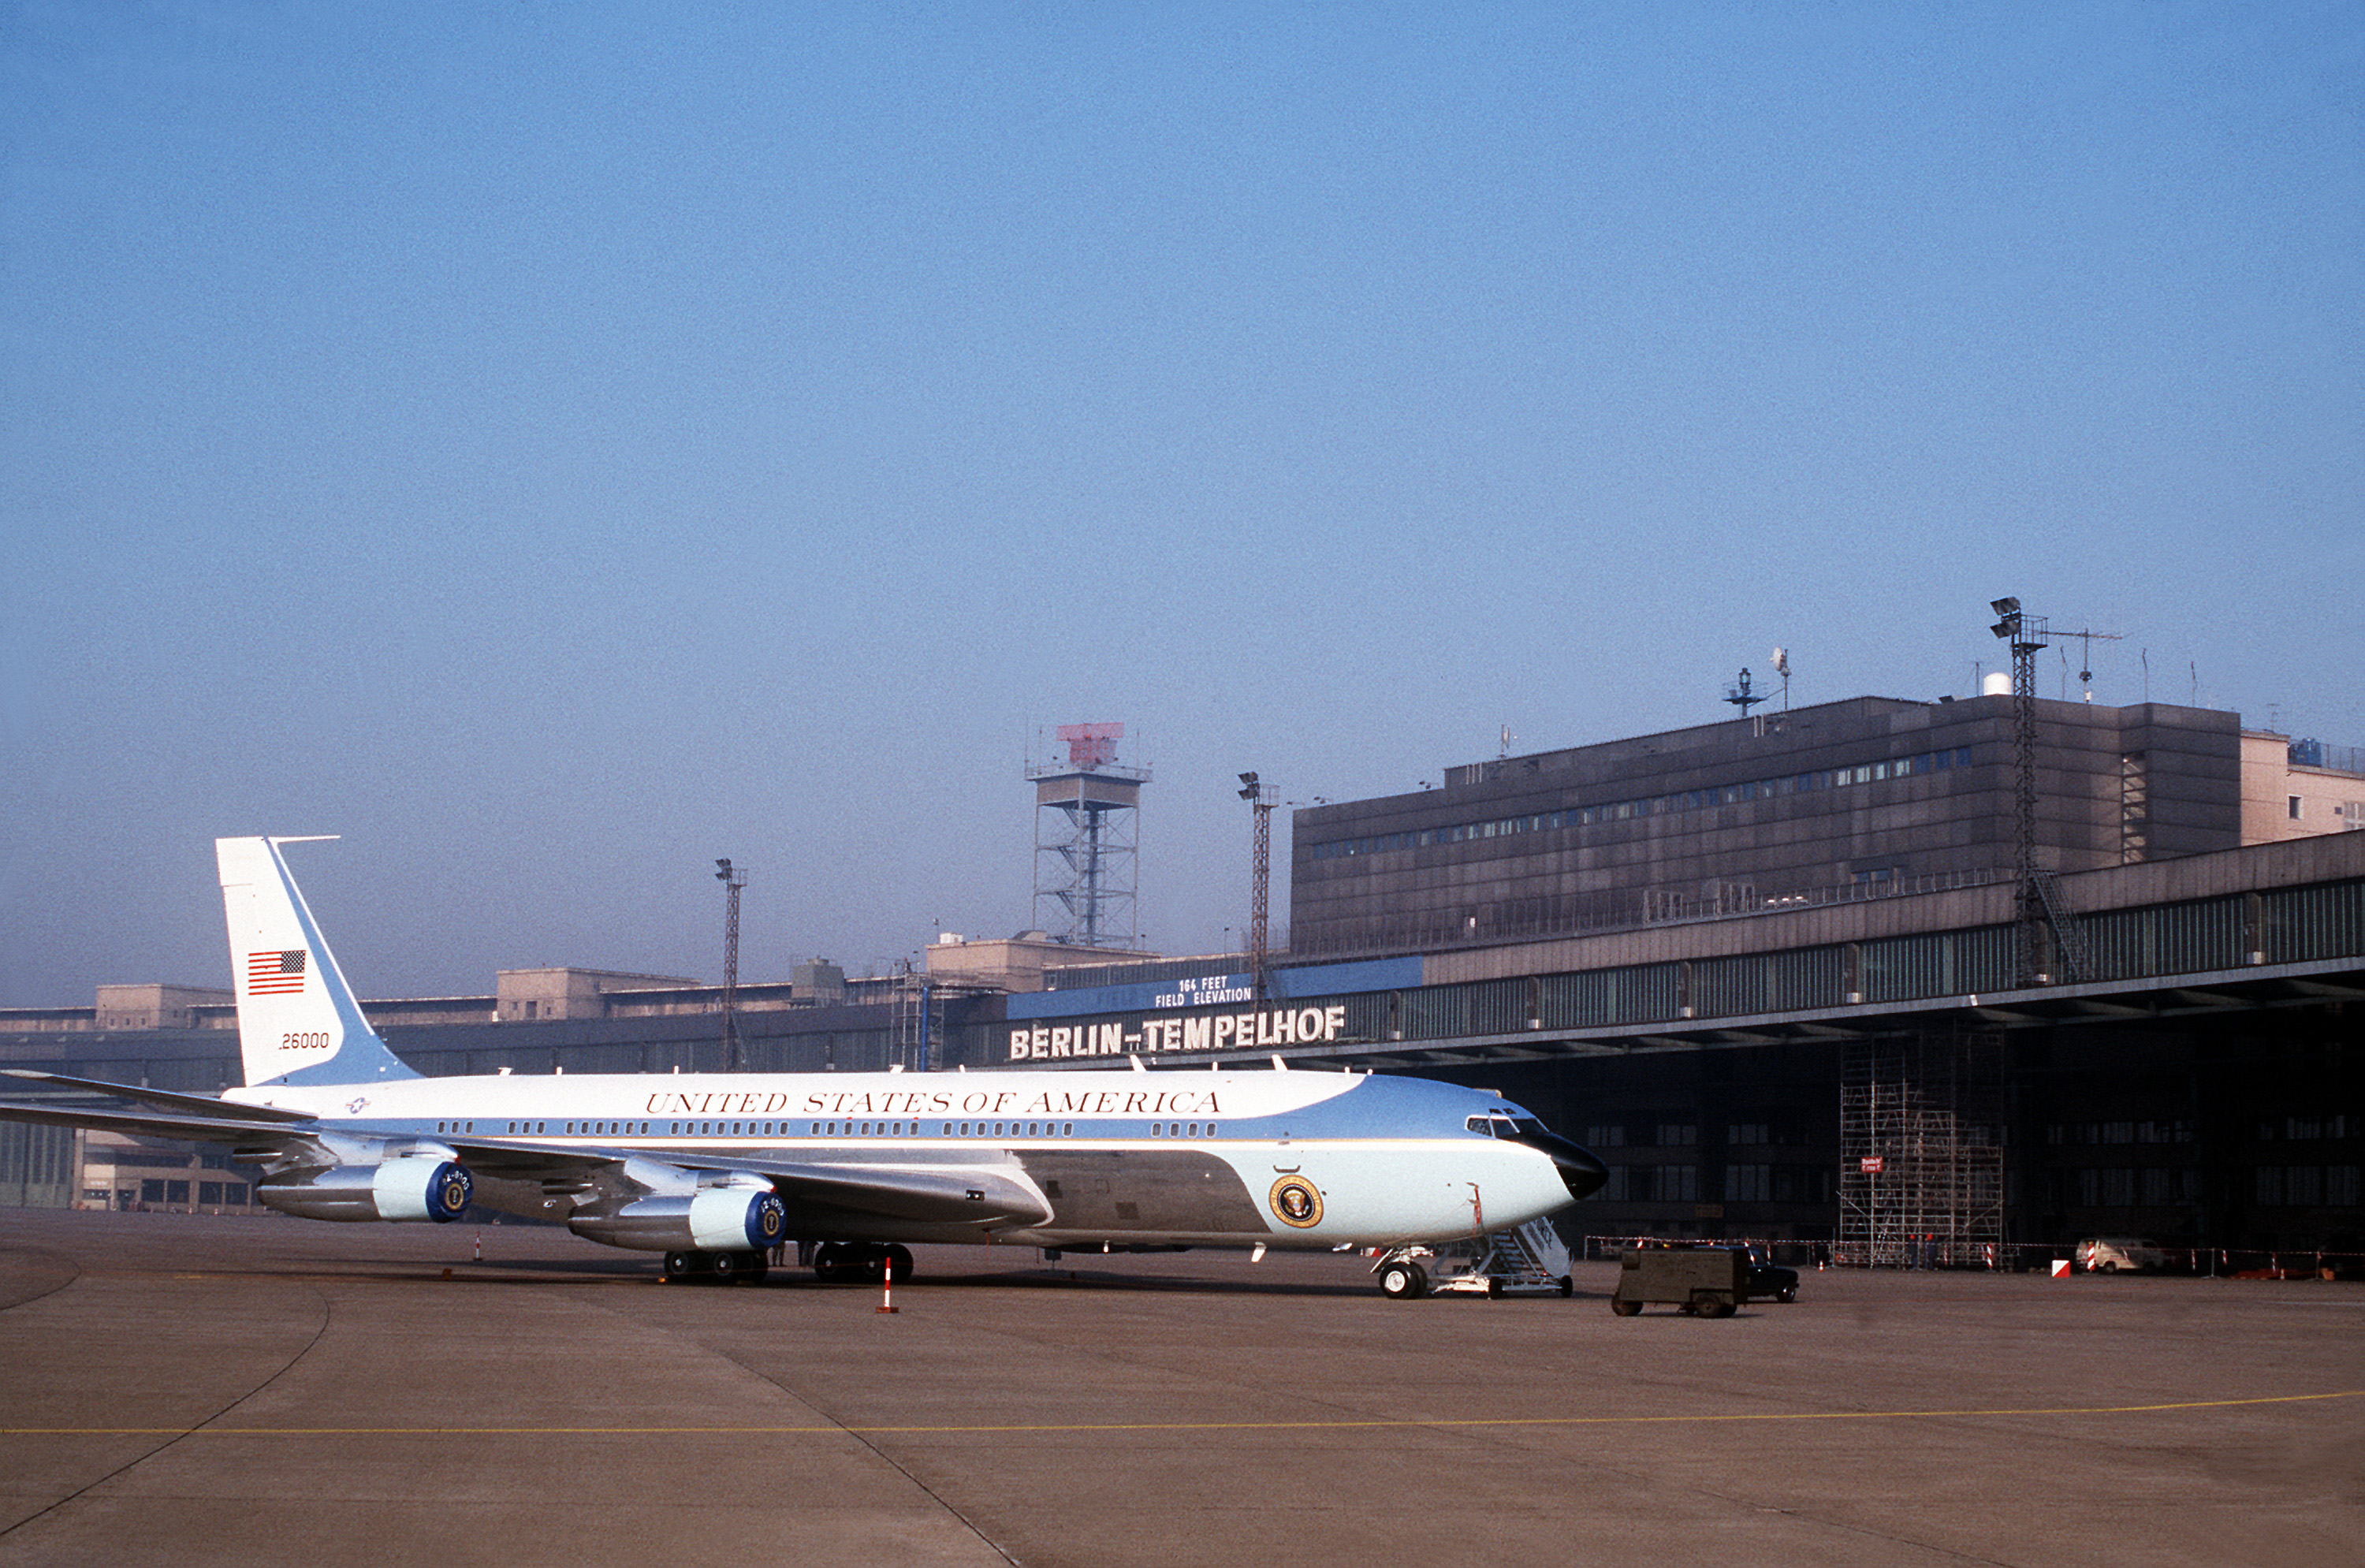 file vc 137c air force one at berlin tempelhof 1987 jpeg wikimedia commons. Black Bedroom Furniture Sets. Home Design Ideas